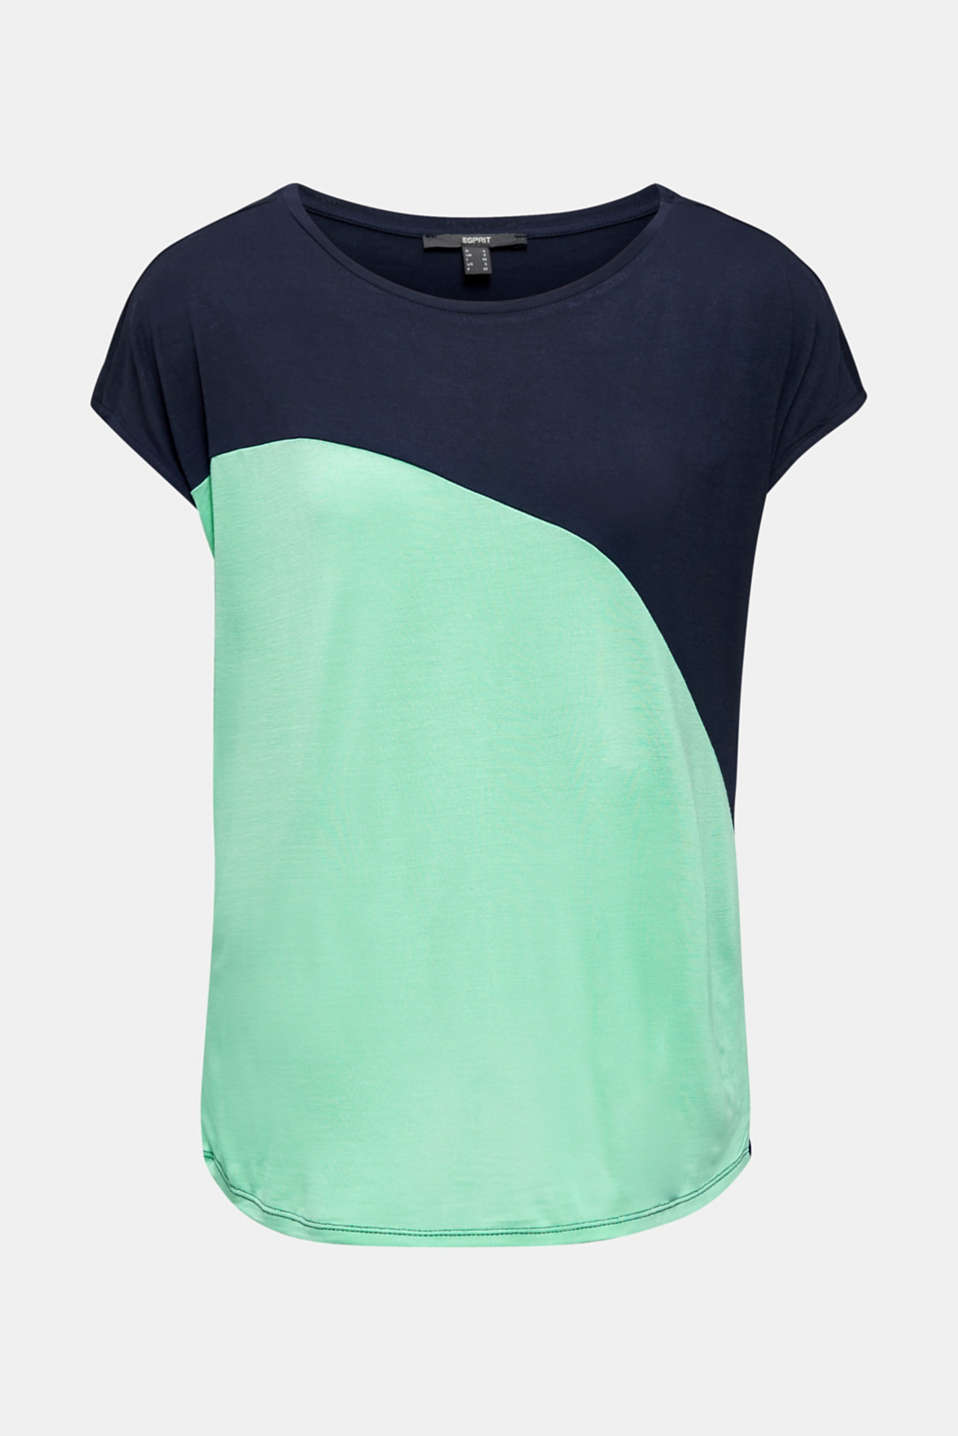 Colour block T-shirt in a new colour mix, NAVY, detail image number 8